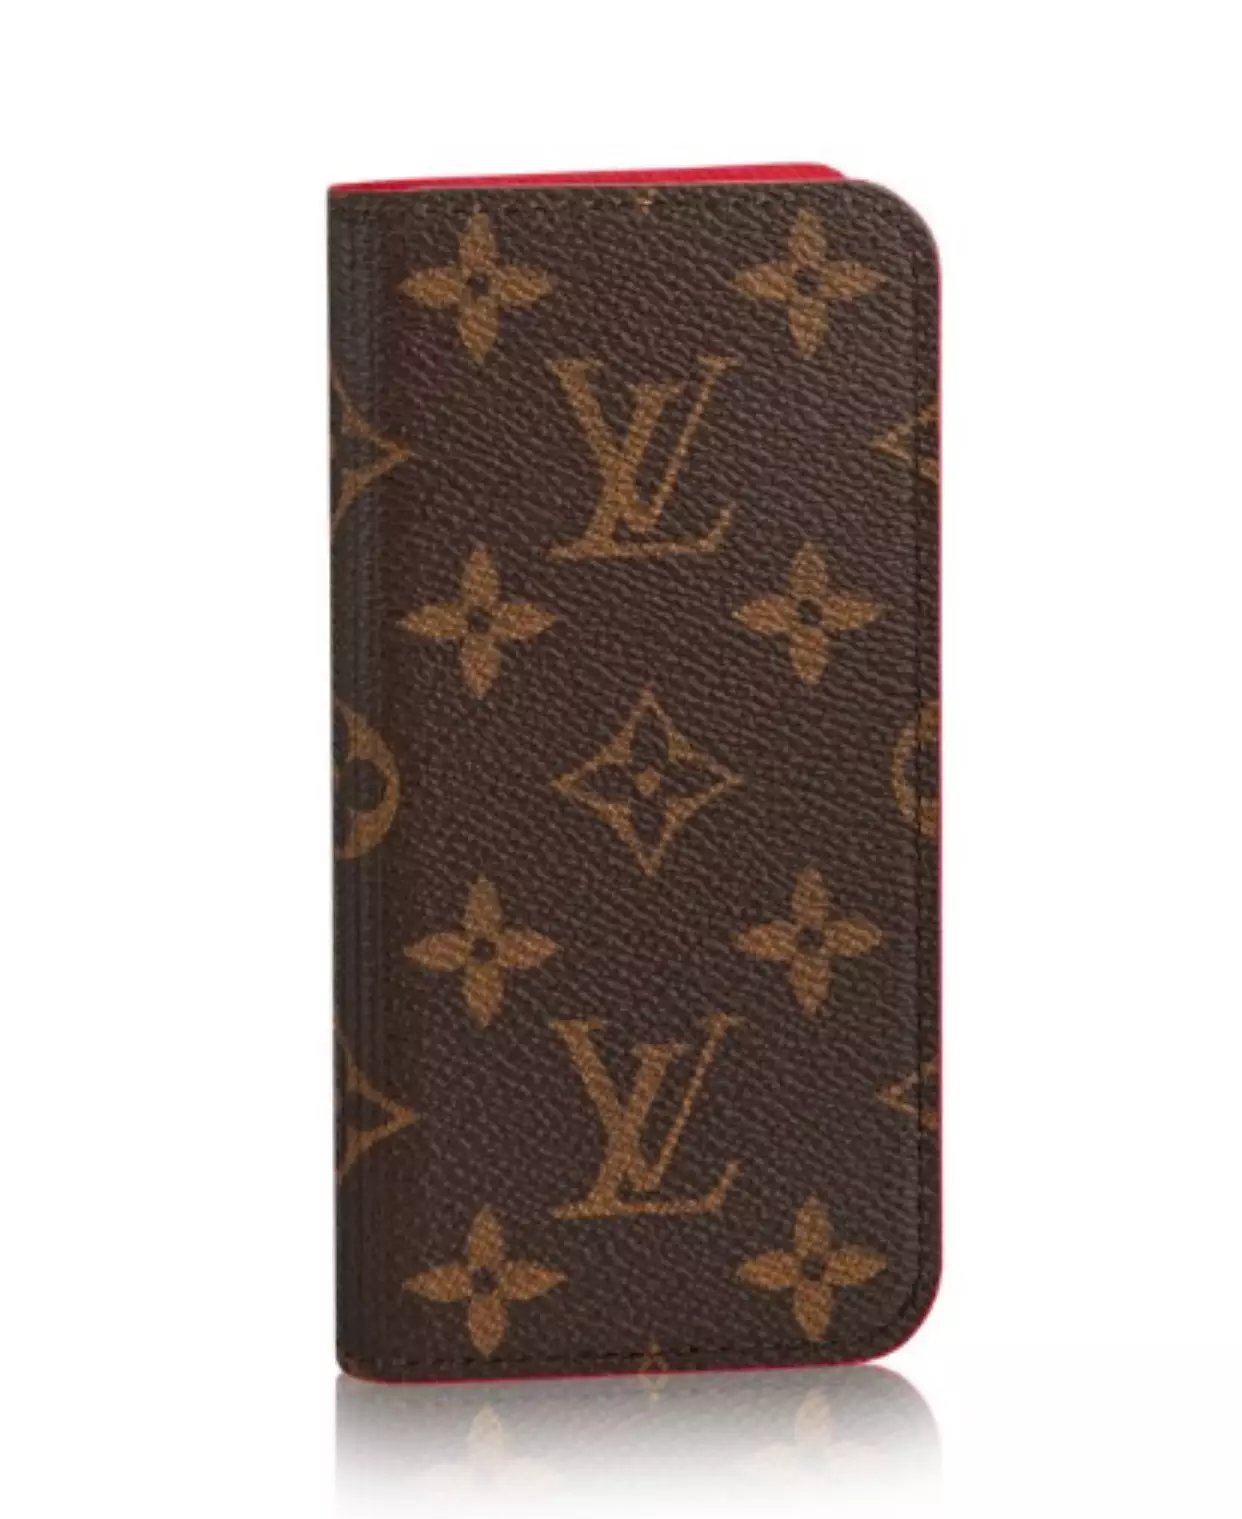 iphone gummihülle lederhülle iphone Louis Vuitton iphone 8 Plus hüllen s8 Plus handyhülle 8 Pluslbst gestalten iphone 8 Plus alu hülle iphone 8 Plus hülle grün fotos iphone zu iphone handyhülle htc one mini iphone schutz